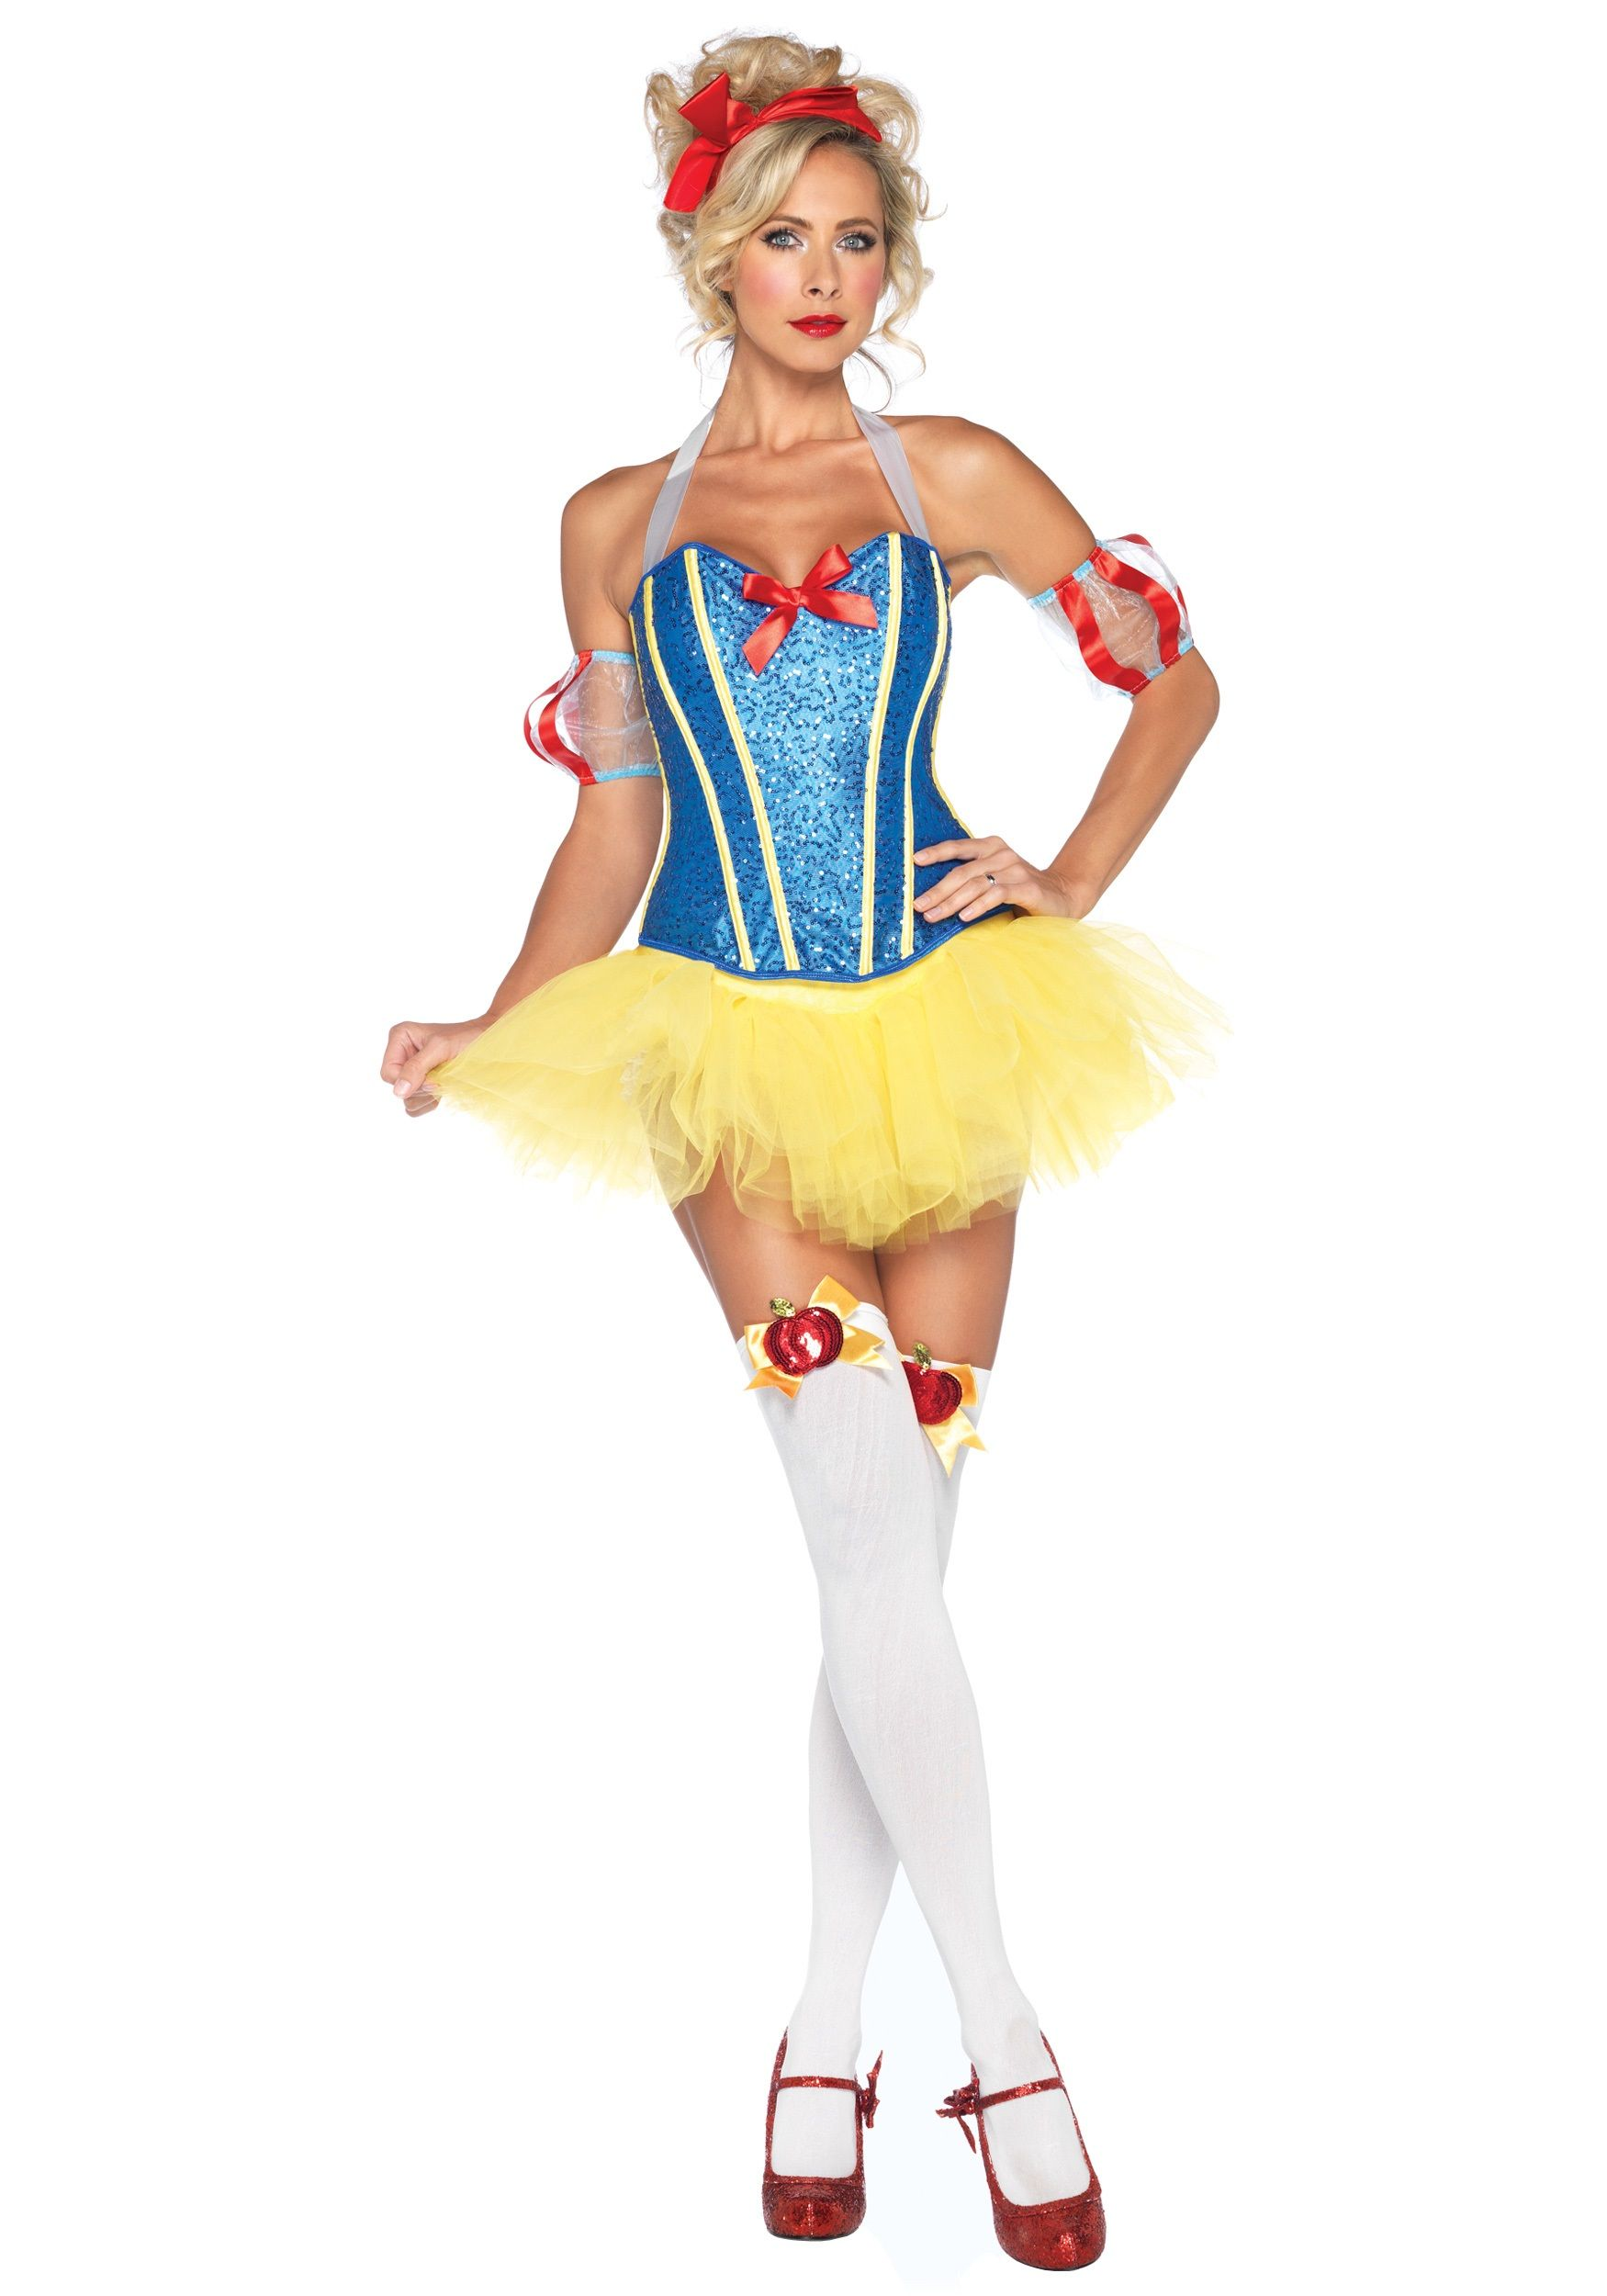 Sexy Disney Princess Dance Costume  Sexy Snow White Costume  Costumes  Sexy Snow White Costume, Snow White Costume, Snow White Costume Adult-6420